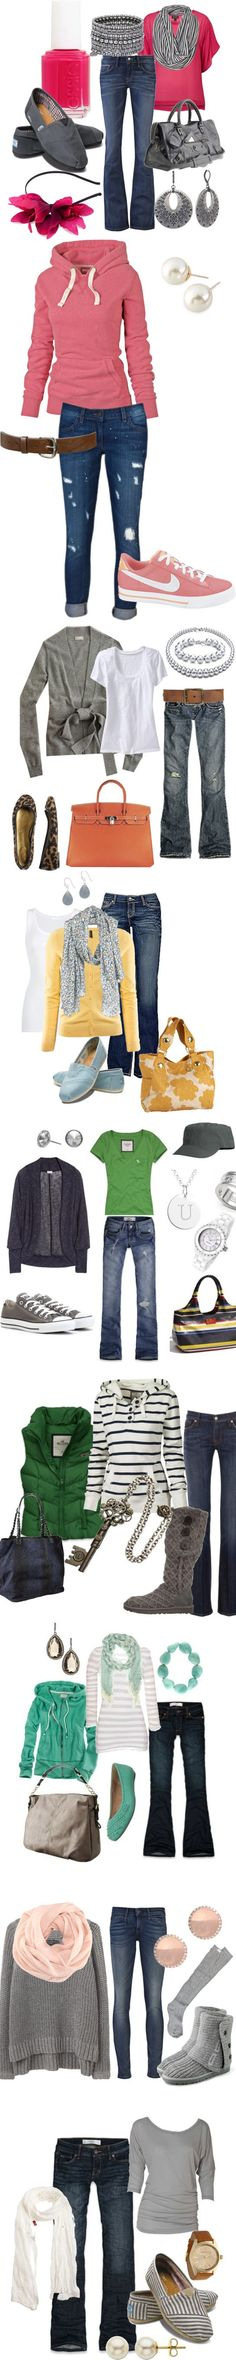 outfits, idea, fall fashions, stuff, style